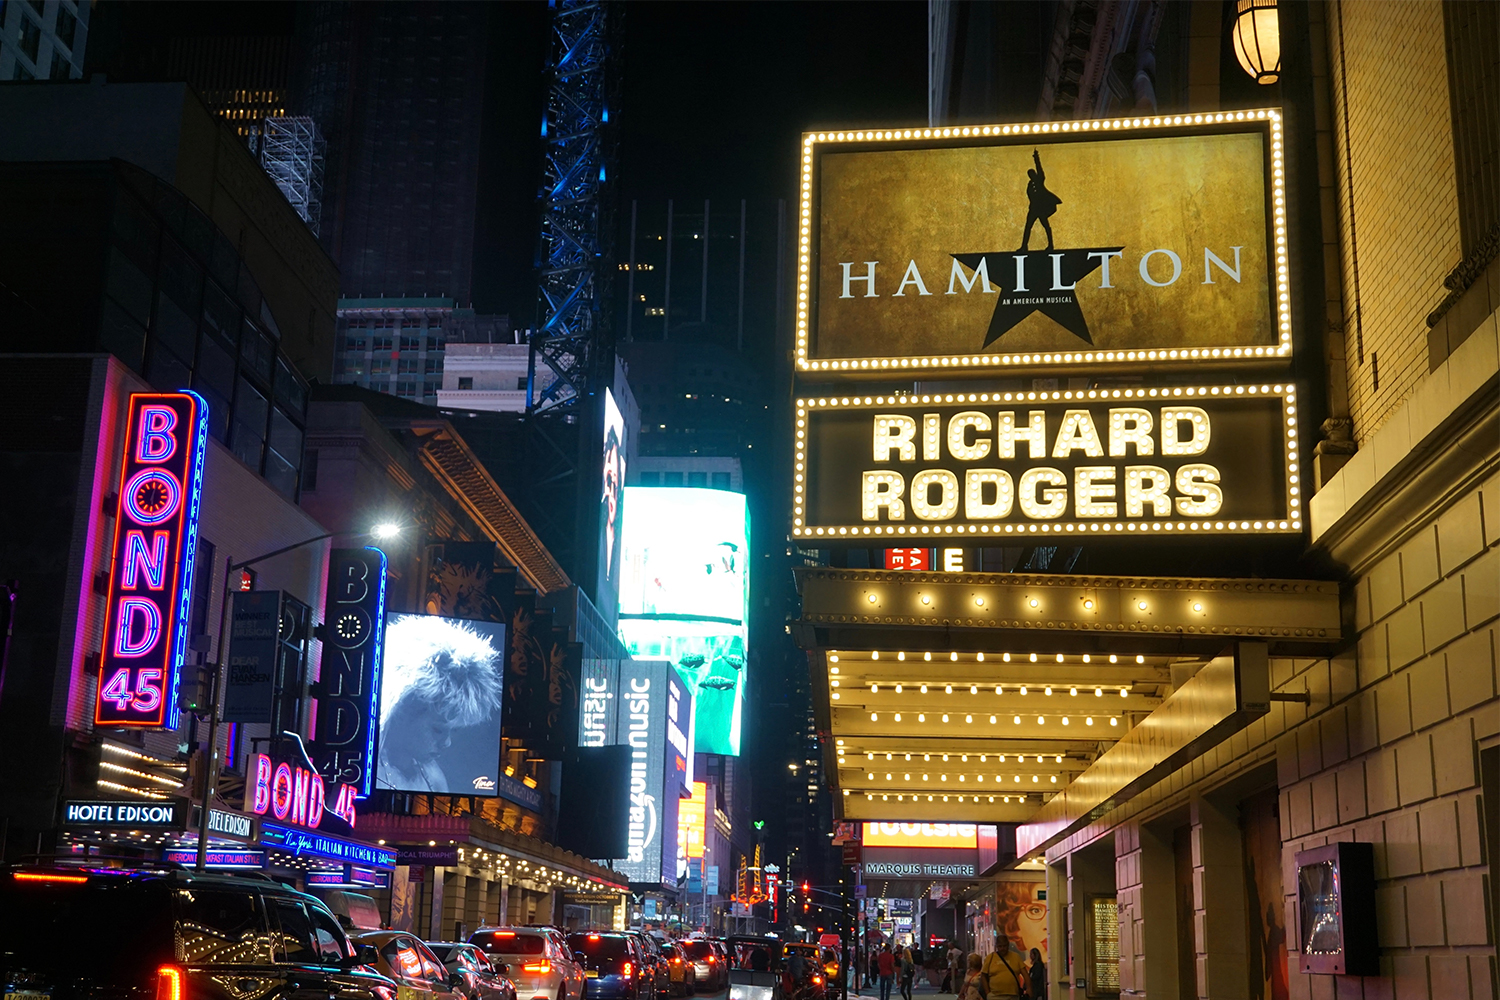 The Broadway marquee for the musical Hamilton